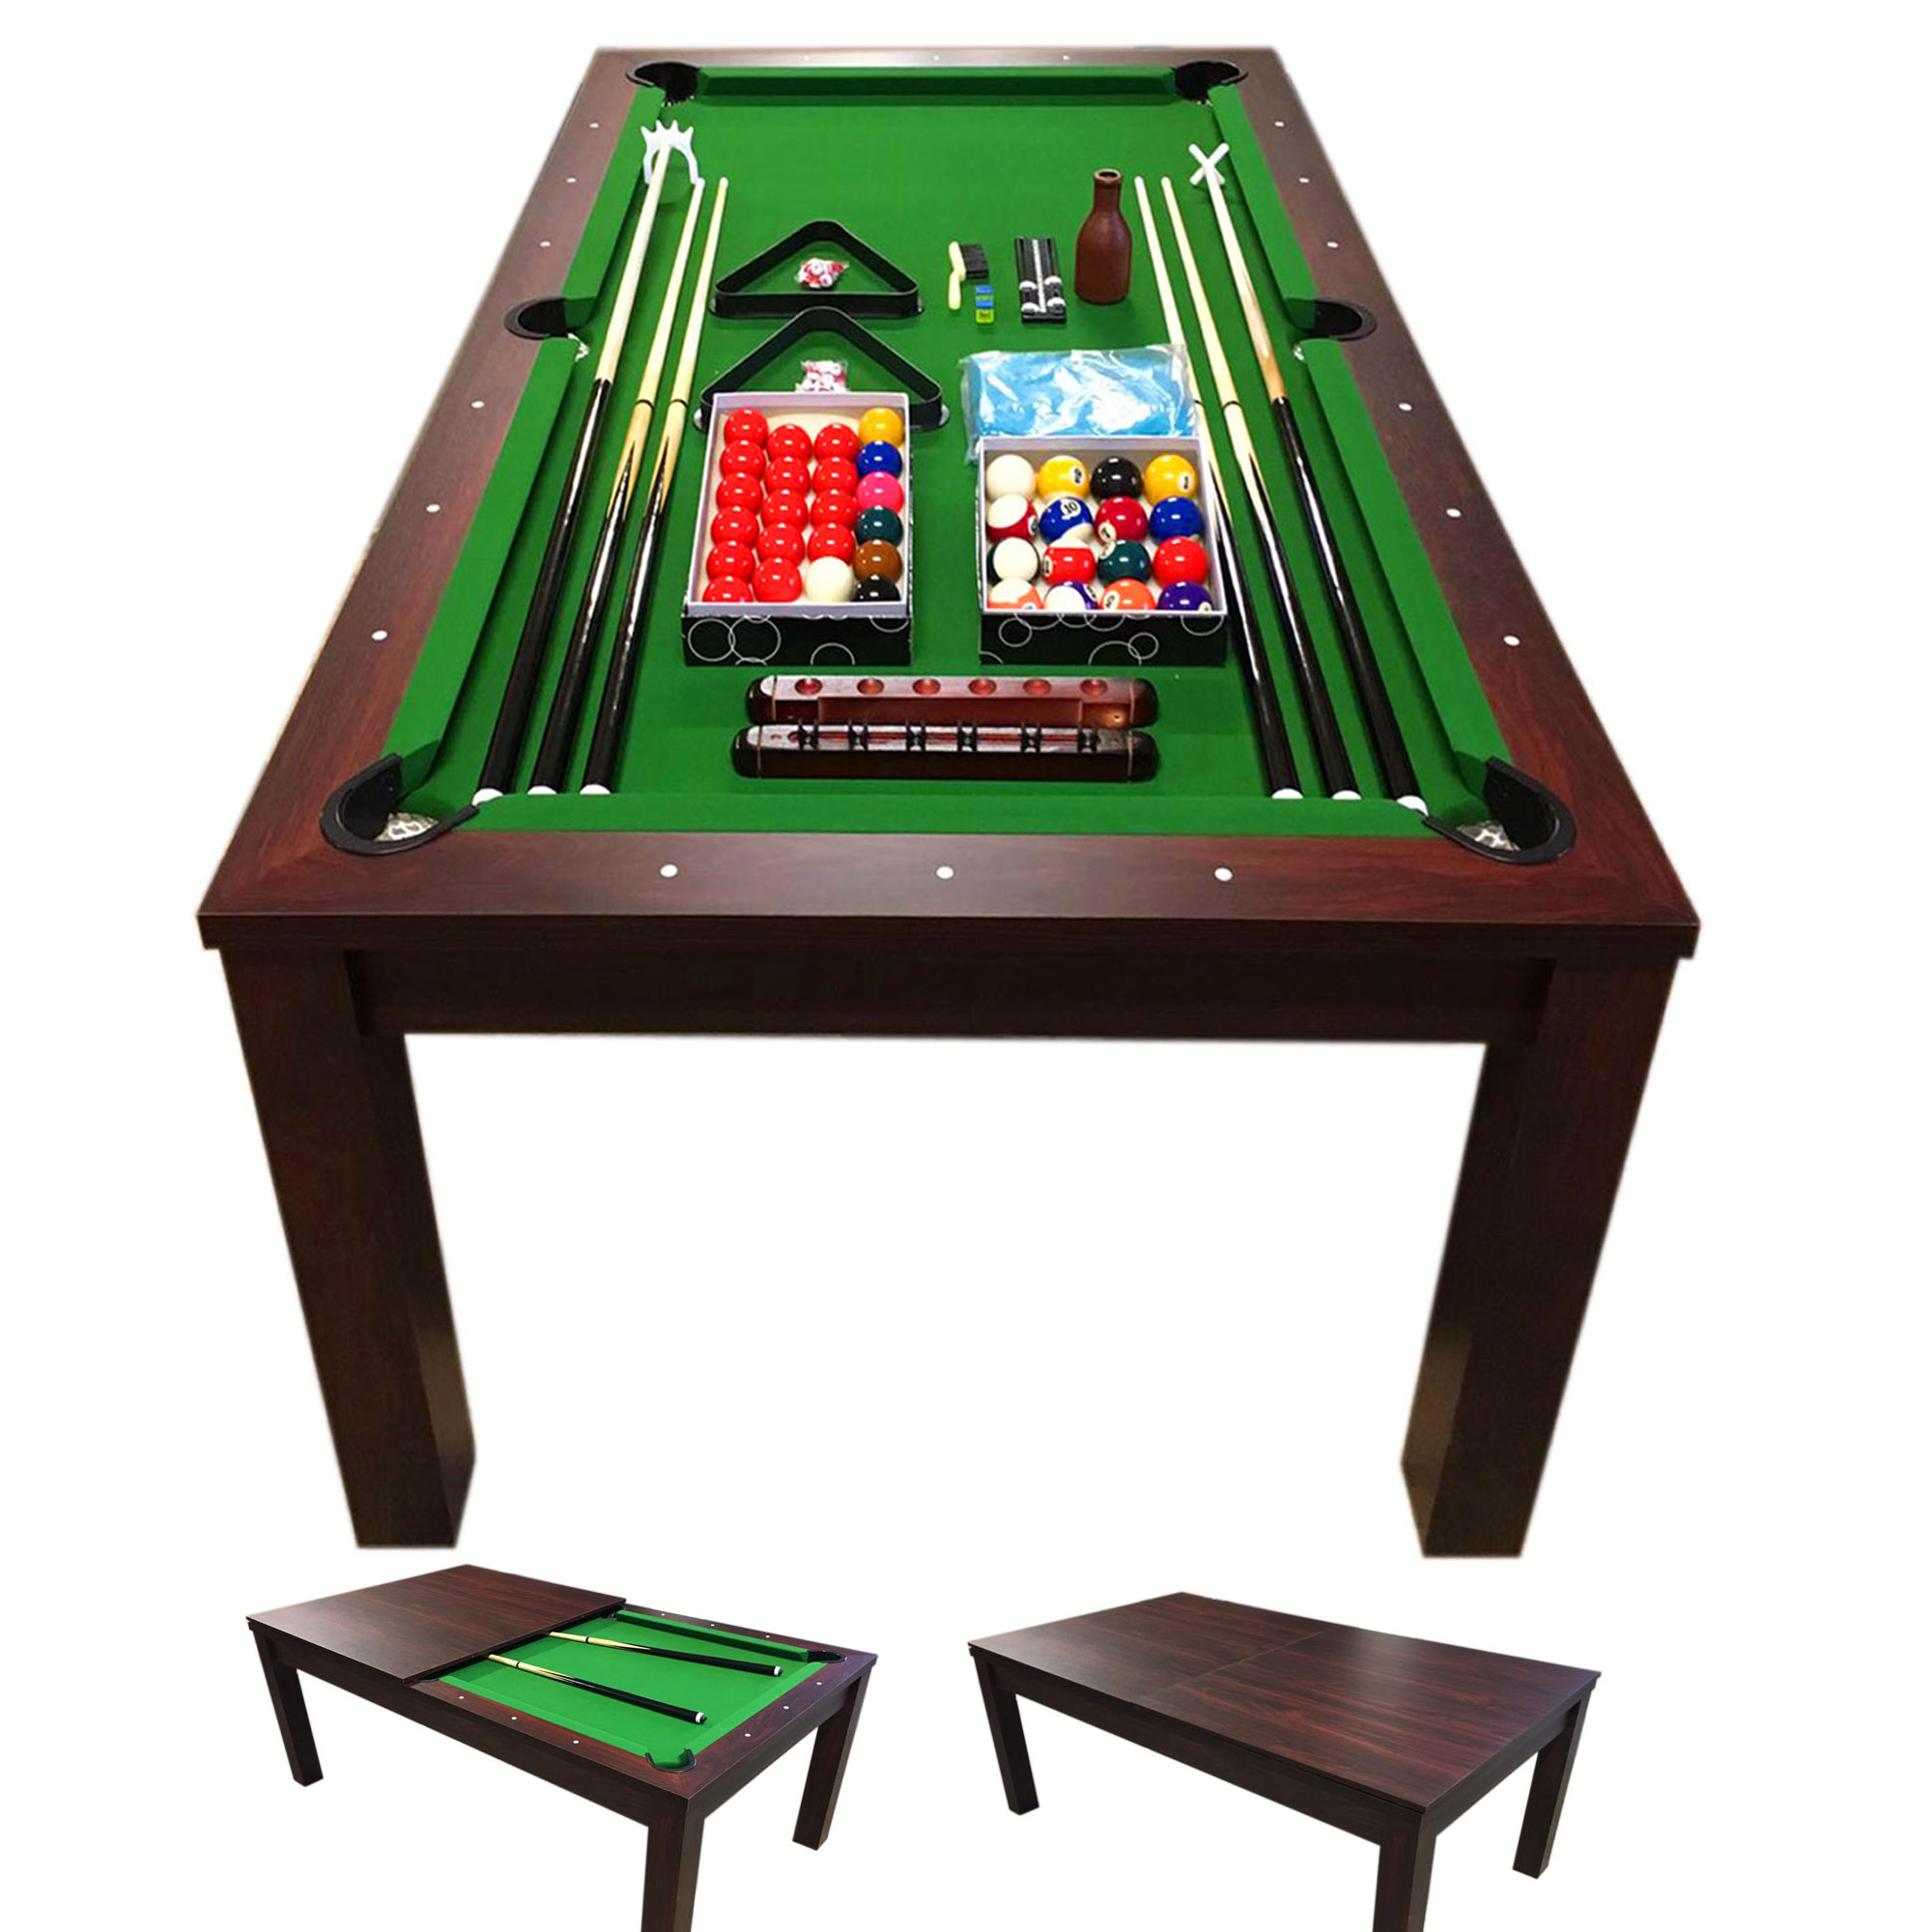 10 FT Pool Table Billiards and Dining Table – Green Star